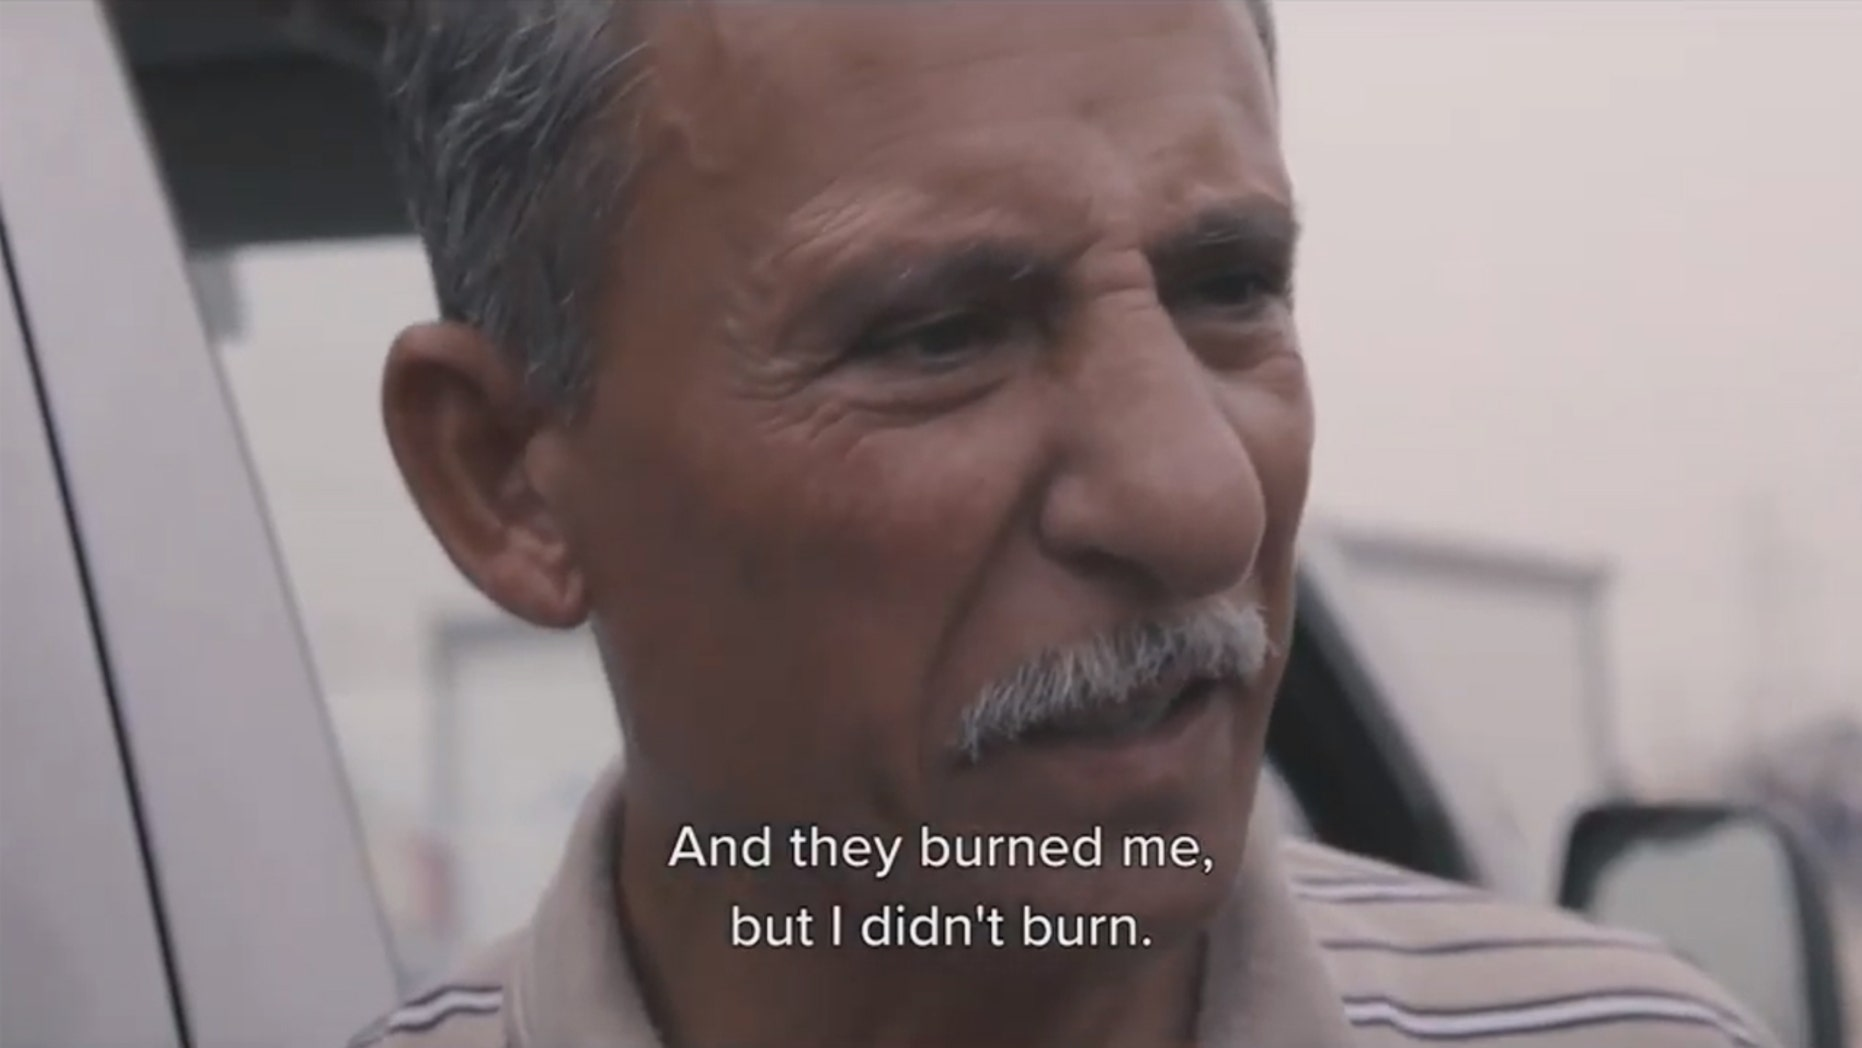 """An Iraqi Christian shares his story of being imprisoned by ISIS, in which they tried to burn him alive three times but his body didn't burn. His story is from an upcoming documentary film called """"Heart and Hands: Iraq"""" from Sean Feucht with his work through Light A Candle Project."""